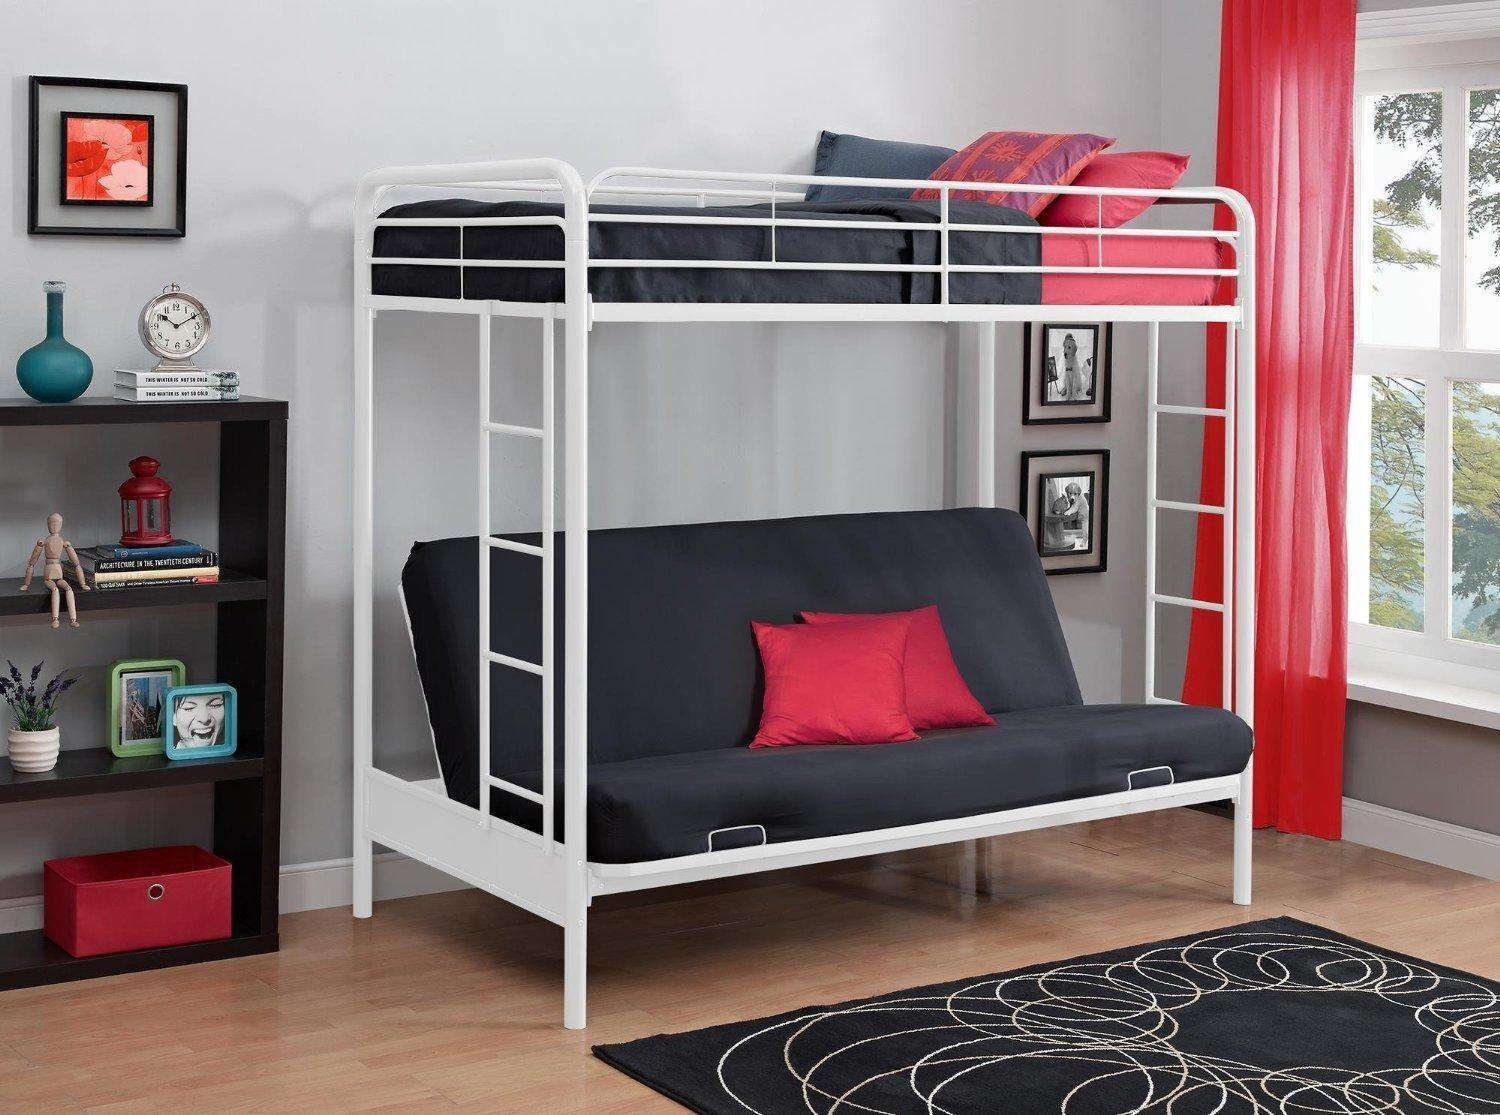 total-fab-metal-wood-loft-beds-with-sofa-underneath-throughout-bunk-bed-with-sofas-underneath